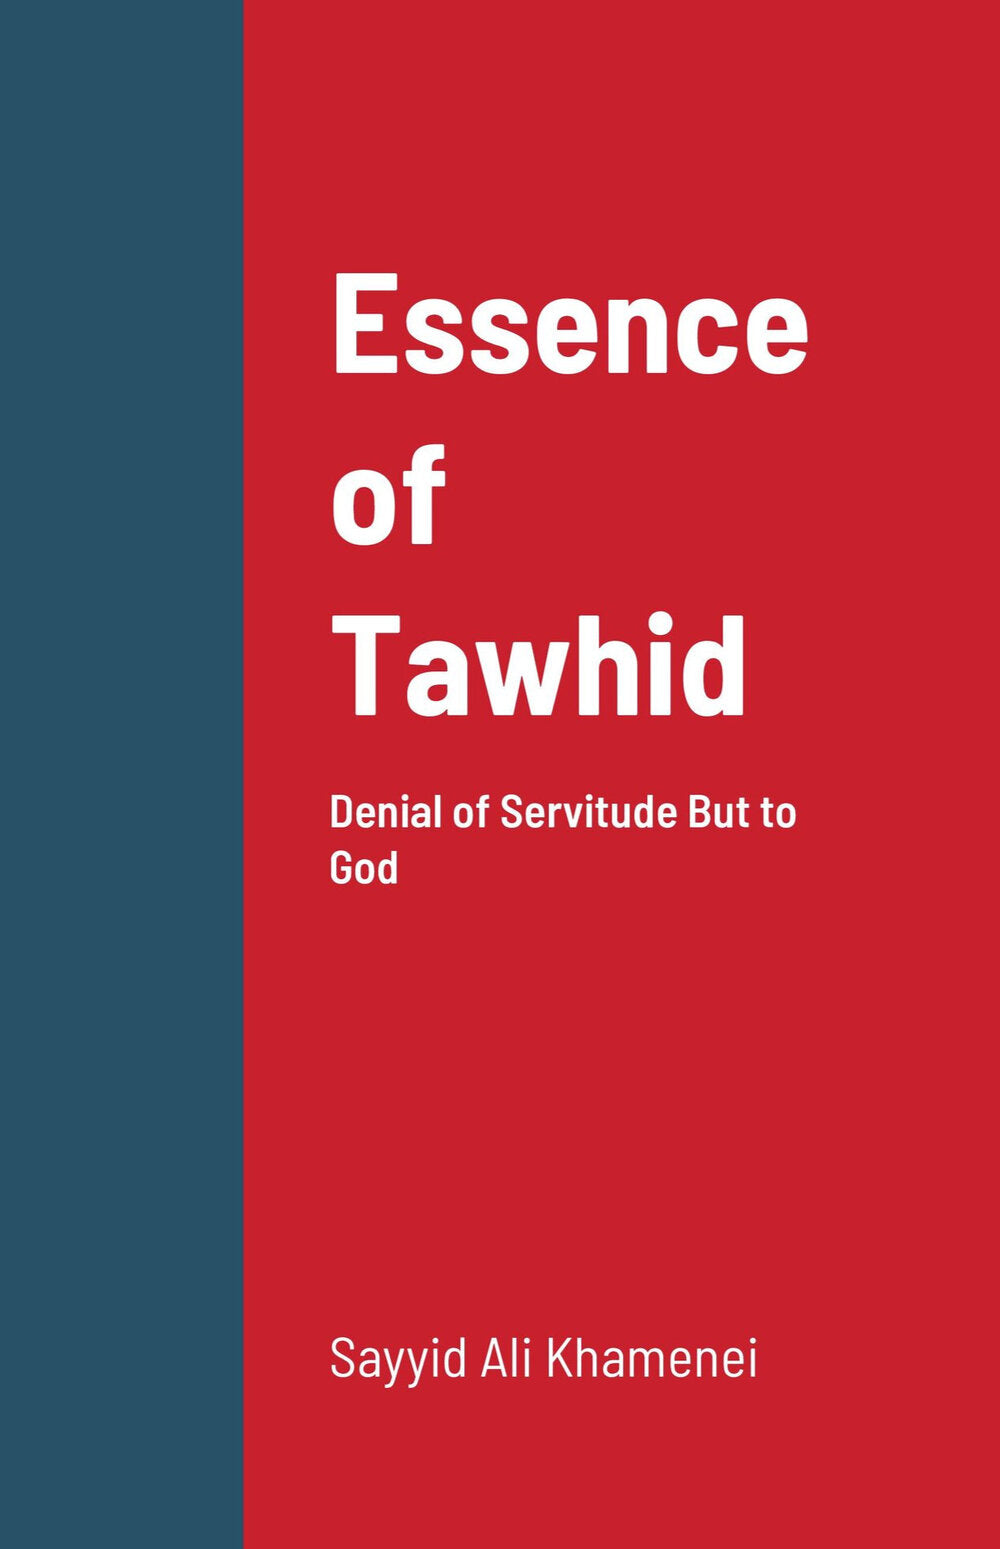 Essence of Tawhid: Denial of Servitude But to God-al-Burāq